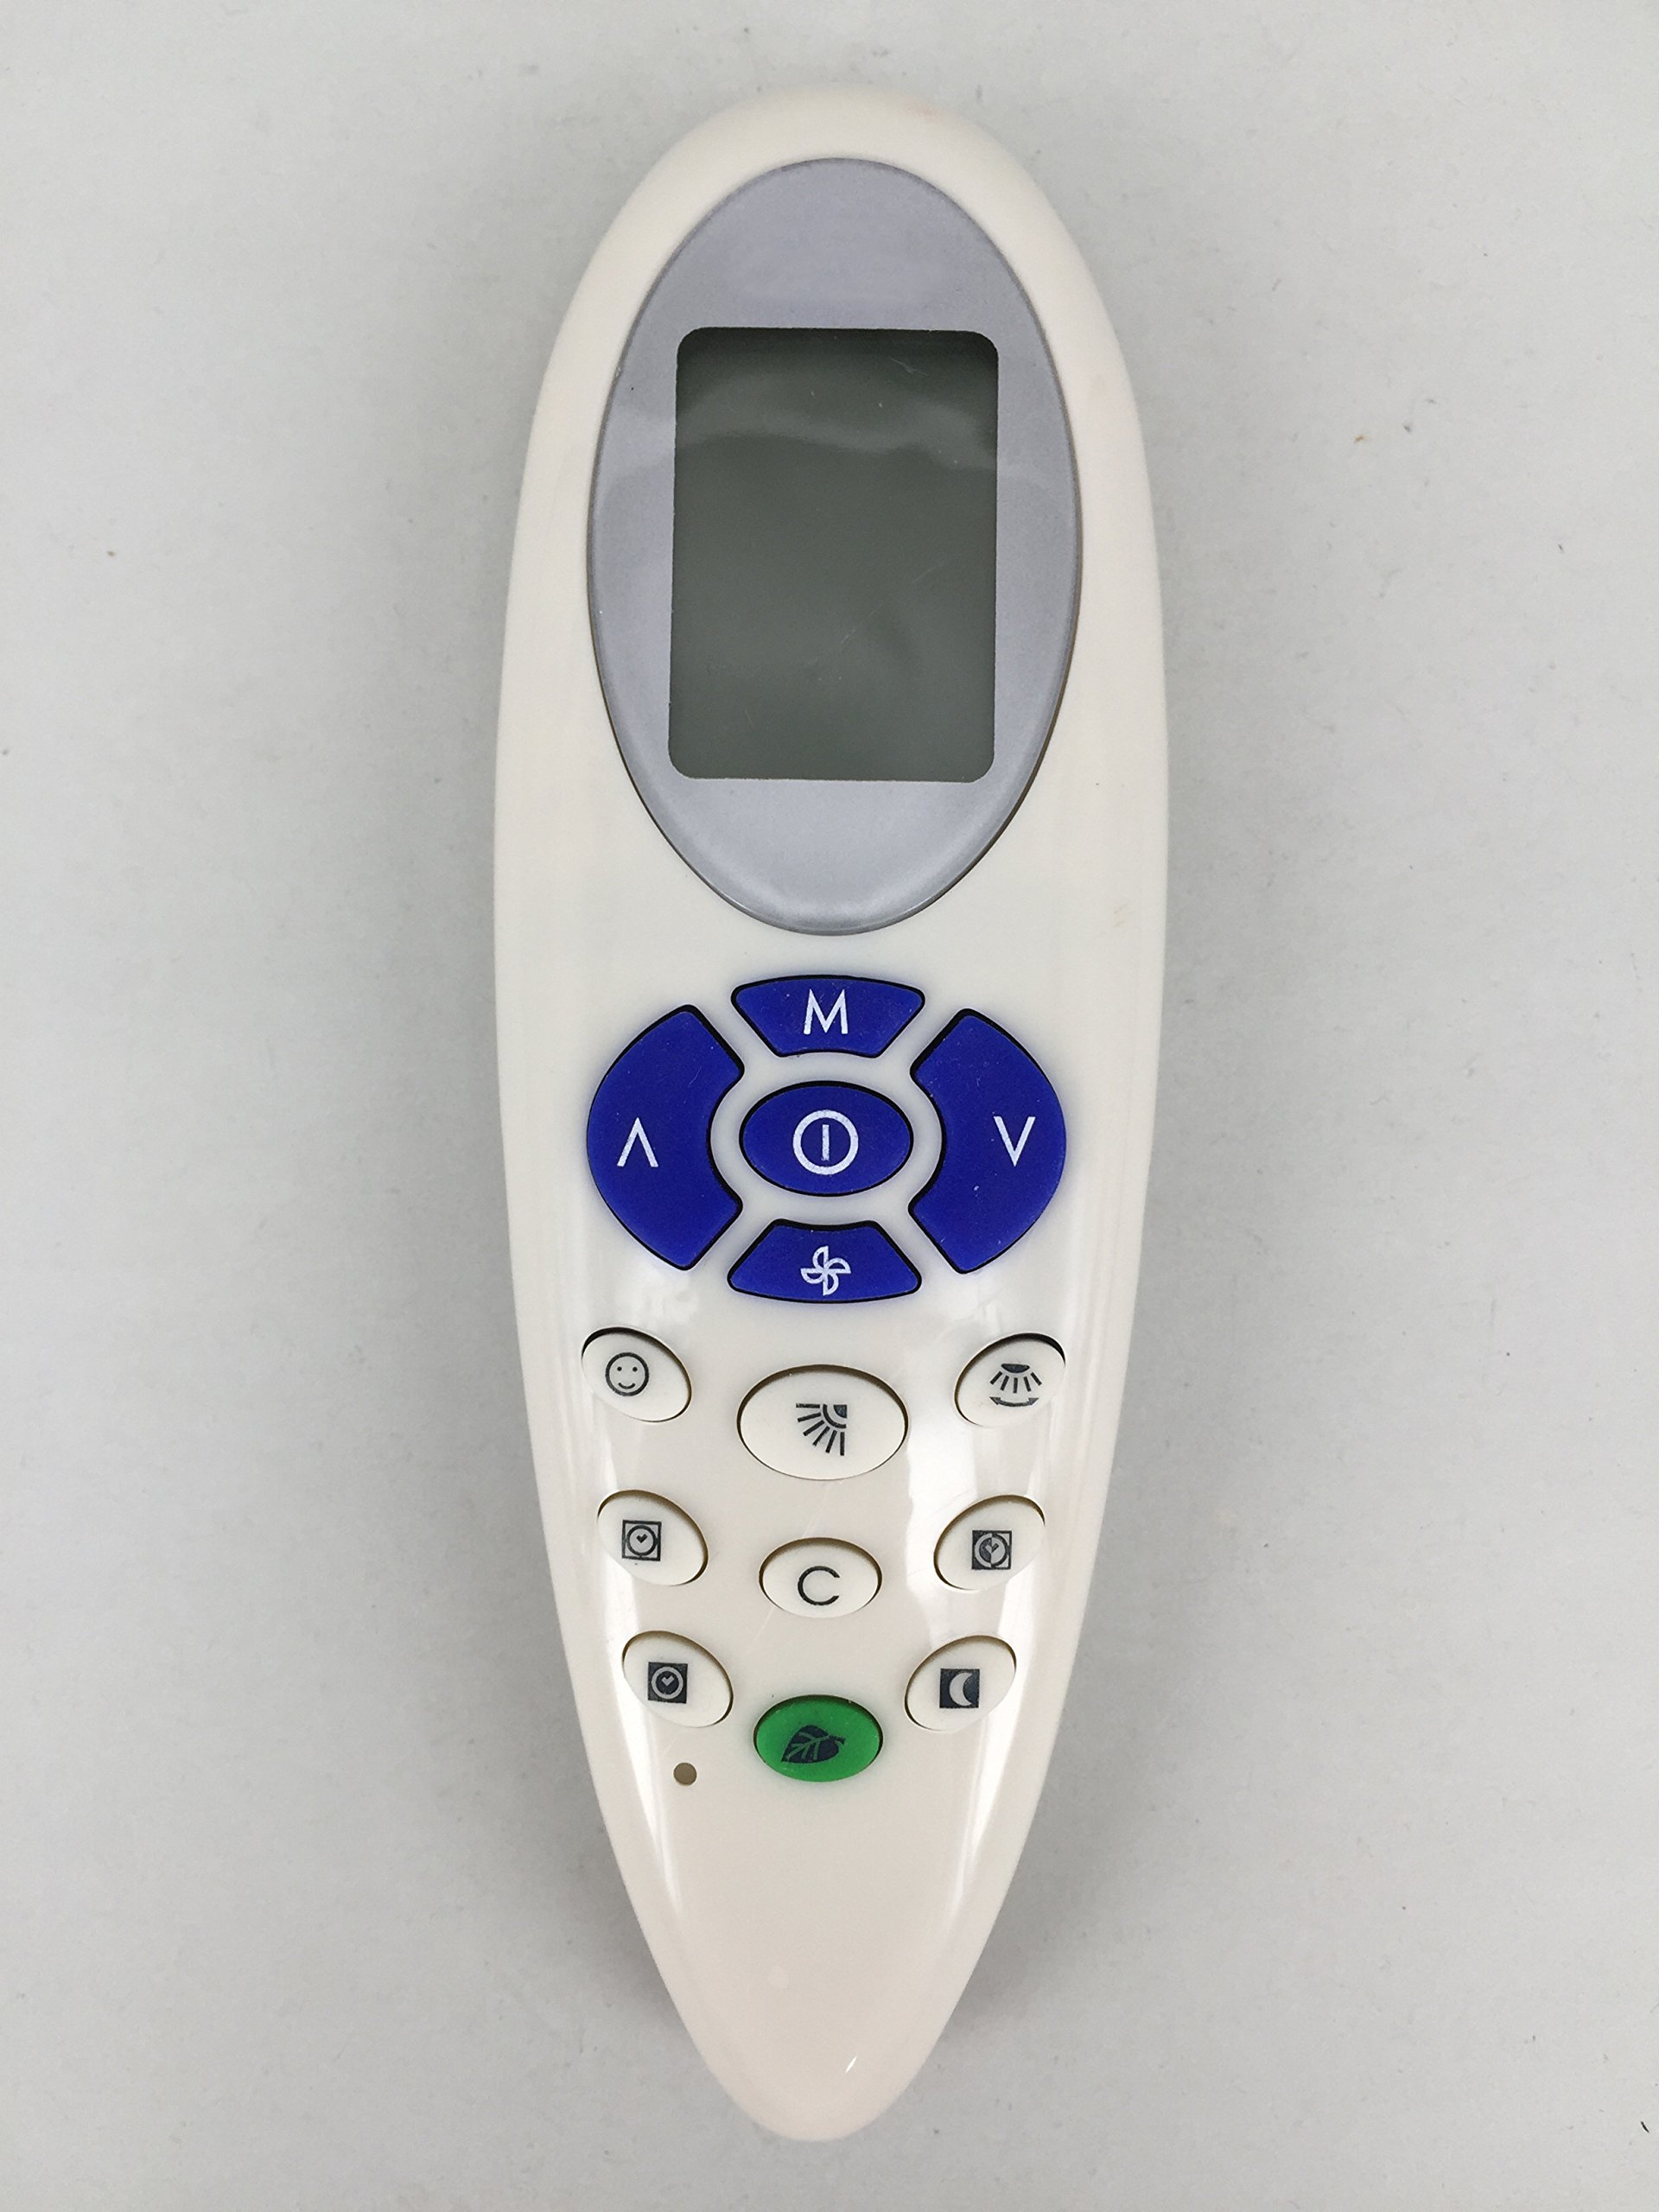 Cheap Carrier Ac Remote Find Carrier Ac Remote Deals On